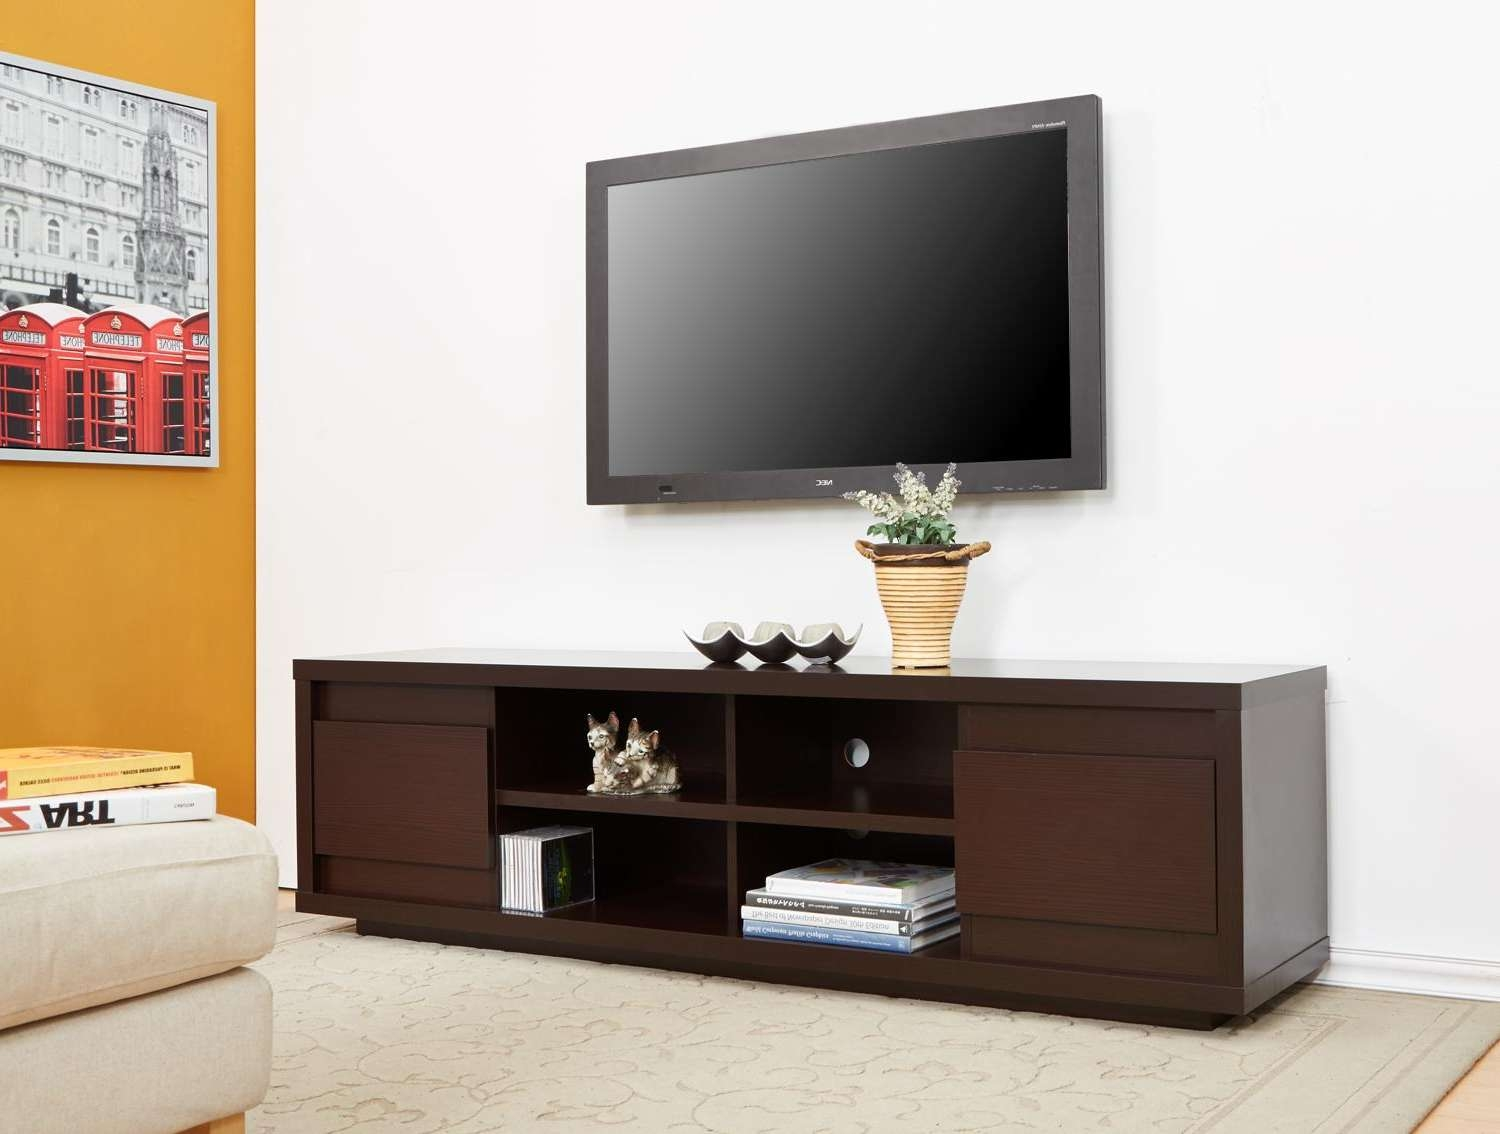 Tv Stand : 49 Impressive Tv Stand With Storage Drawers Photos With Storage Tv Stands (View 10 of 15)